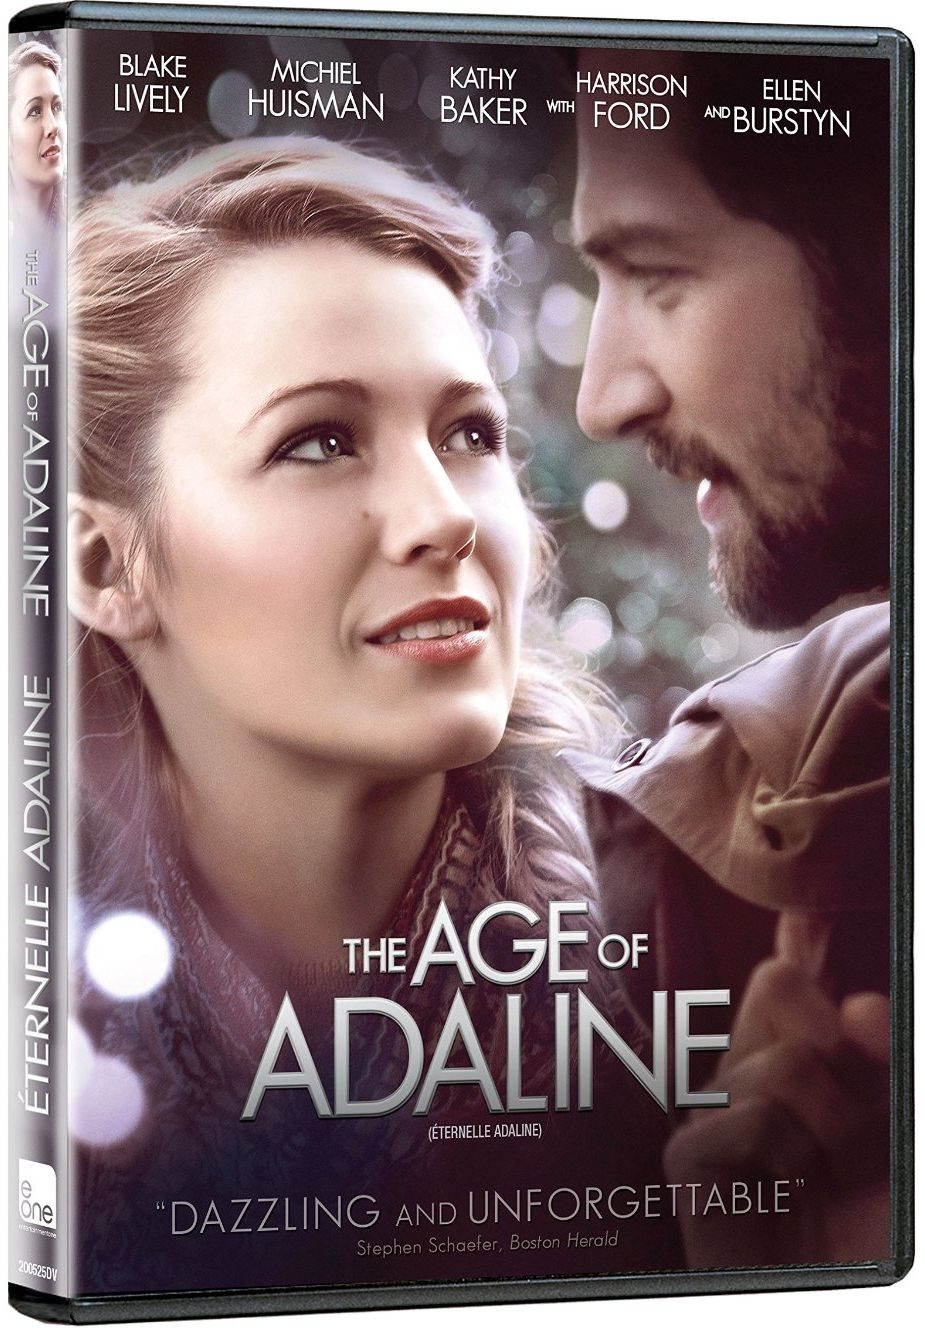 Age of Adaline DVD cover